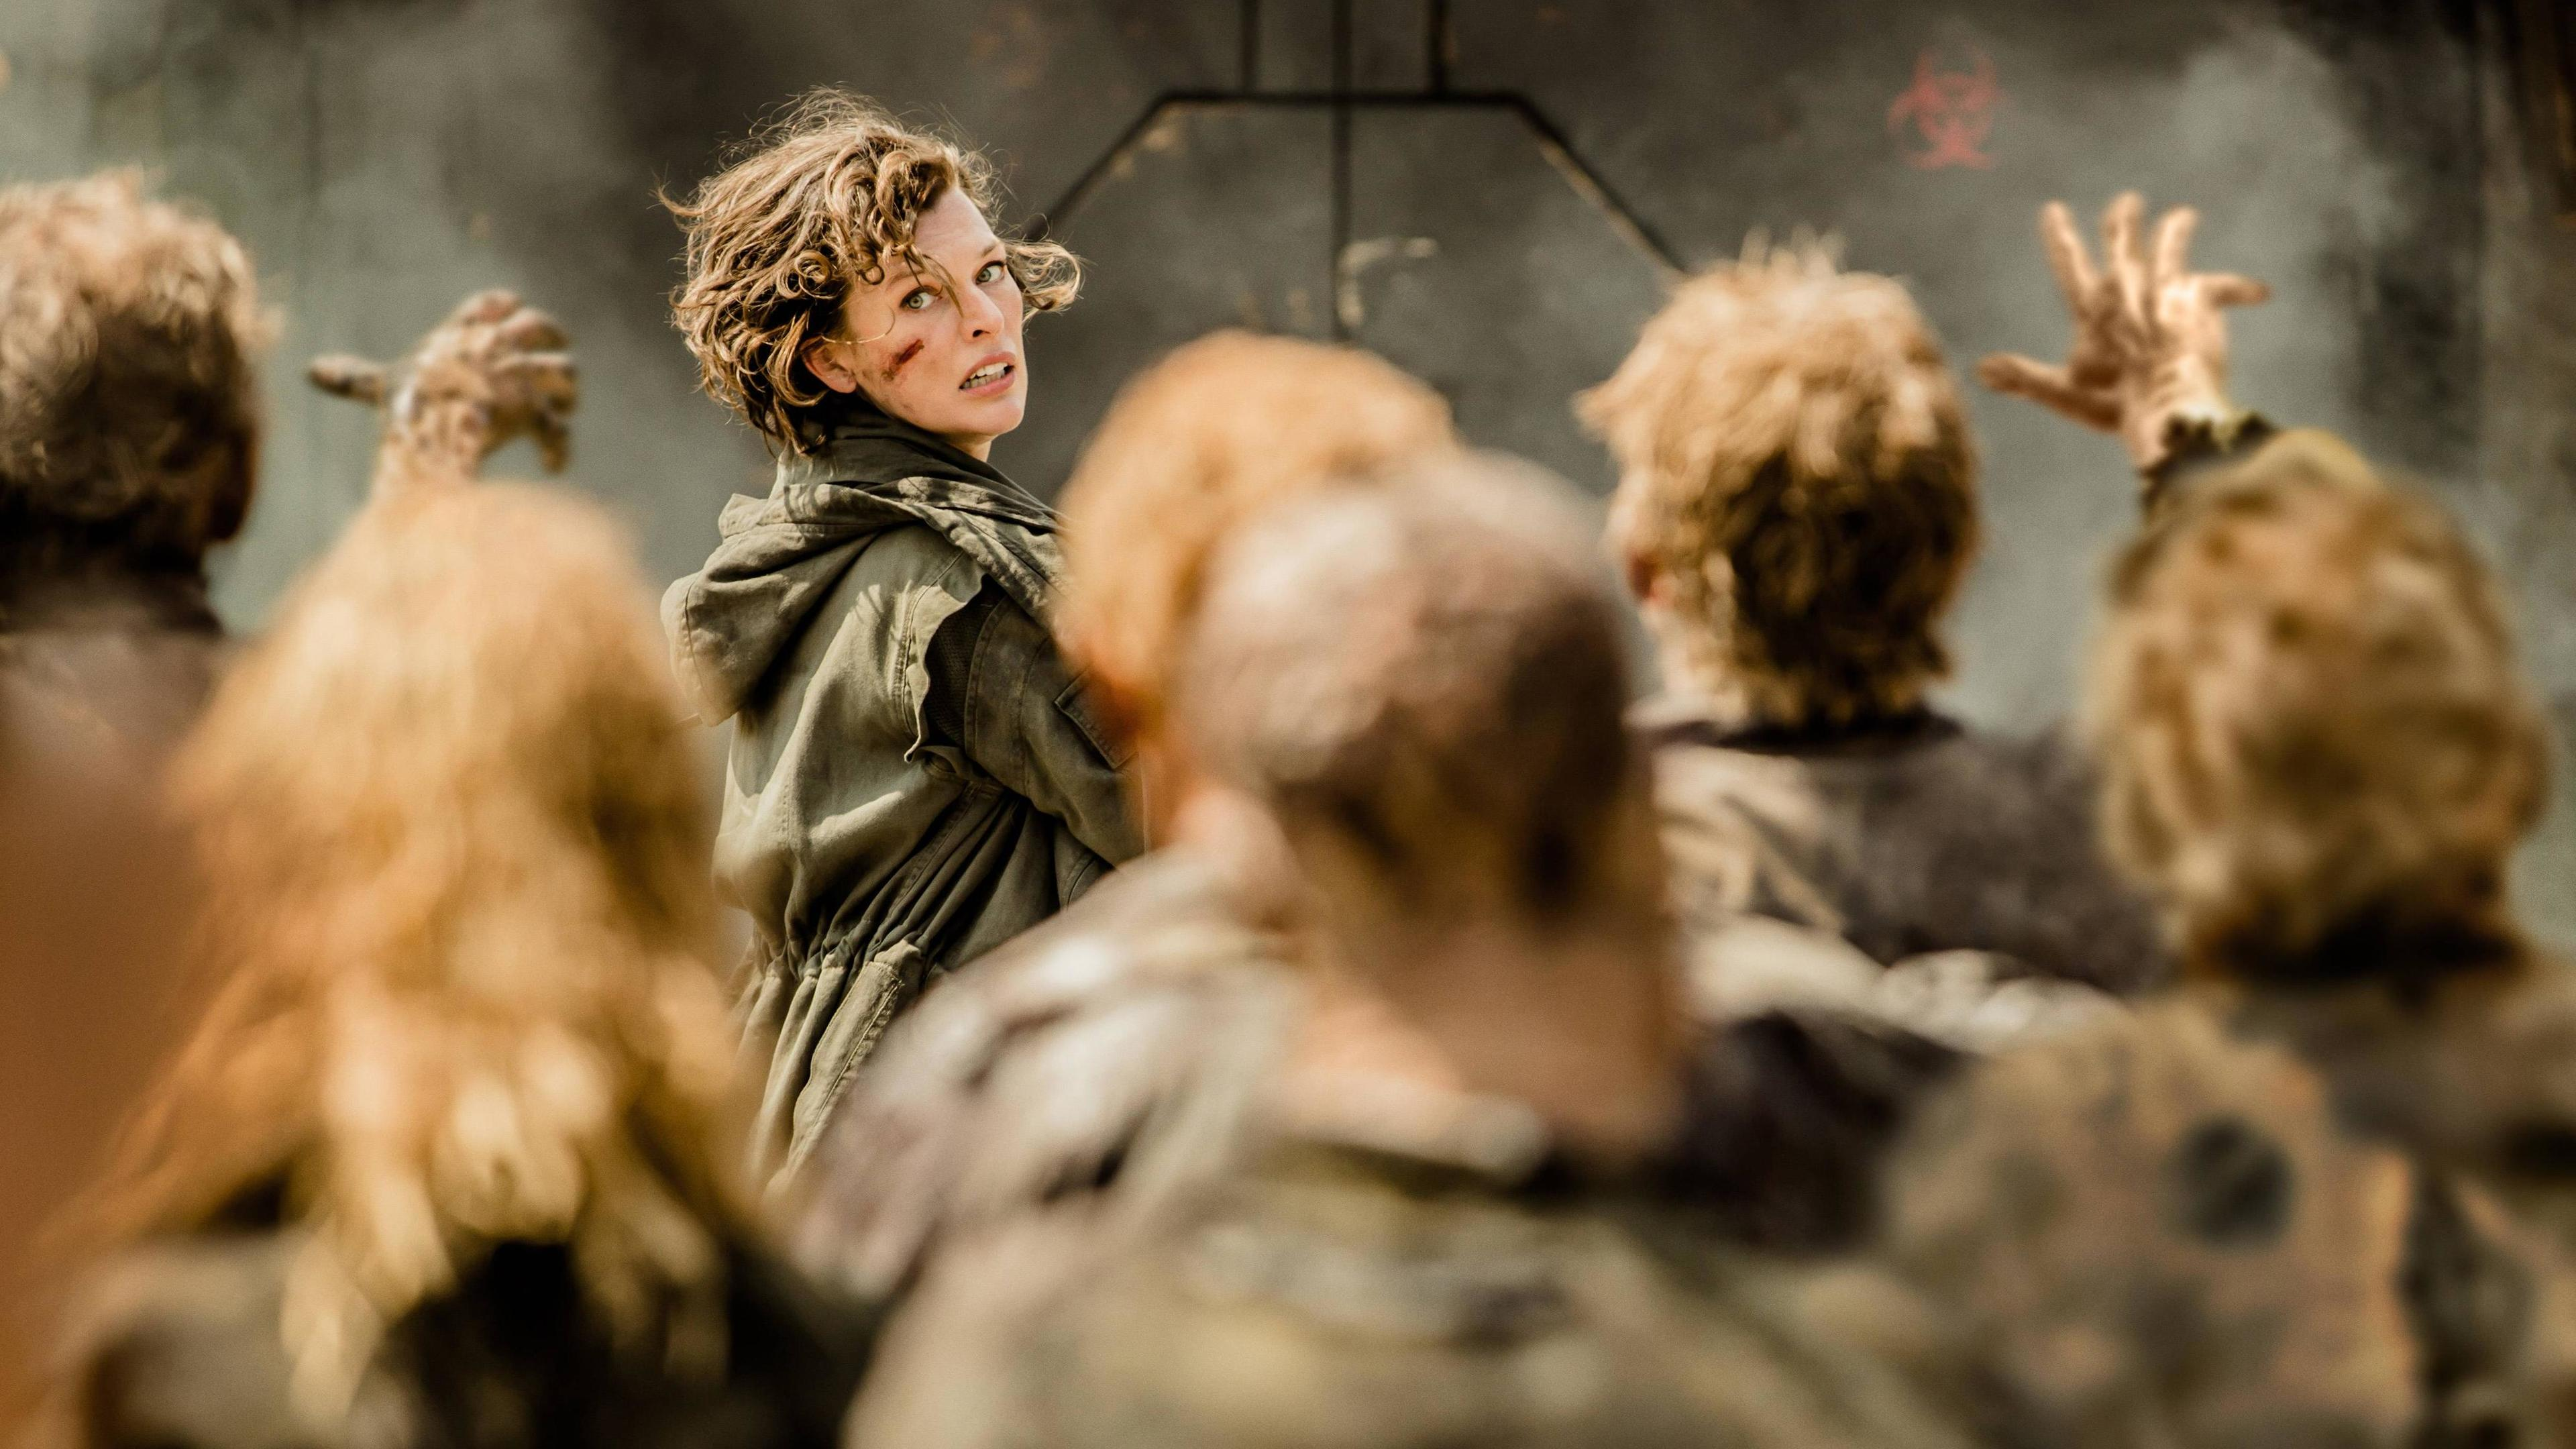 milla jovovich resident evil the final chapter 1536857686 - Milla Jovovich Resident Evil The Final Chapter - resident evil the final chapter wallpapers, resident evil 6 wallpapers, movies wallpapers, milla jovovich wallpapers, 2016 movies wallpapers